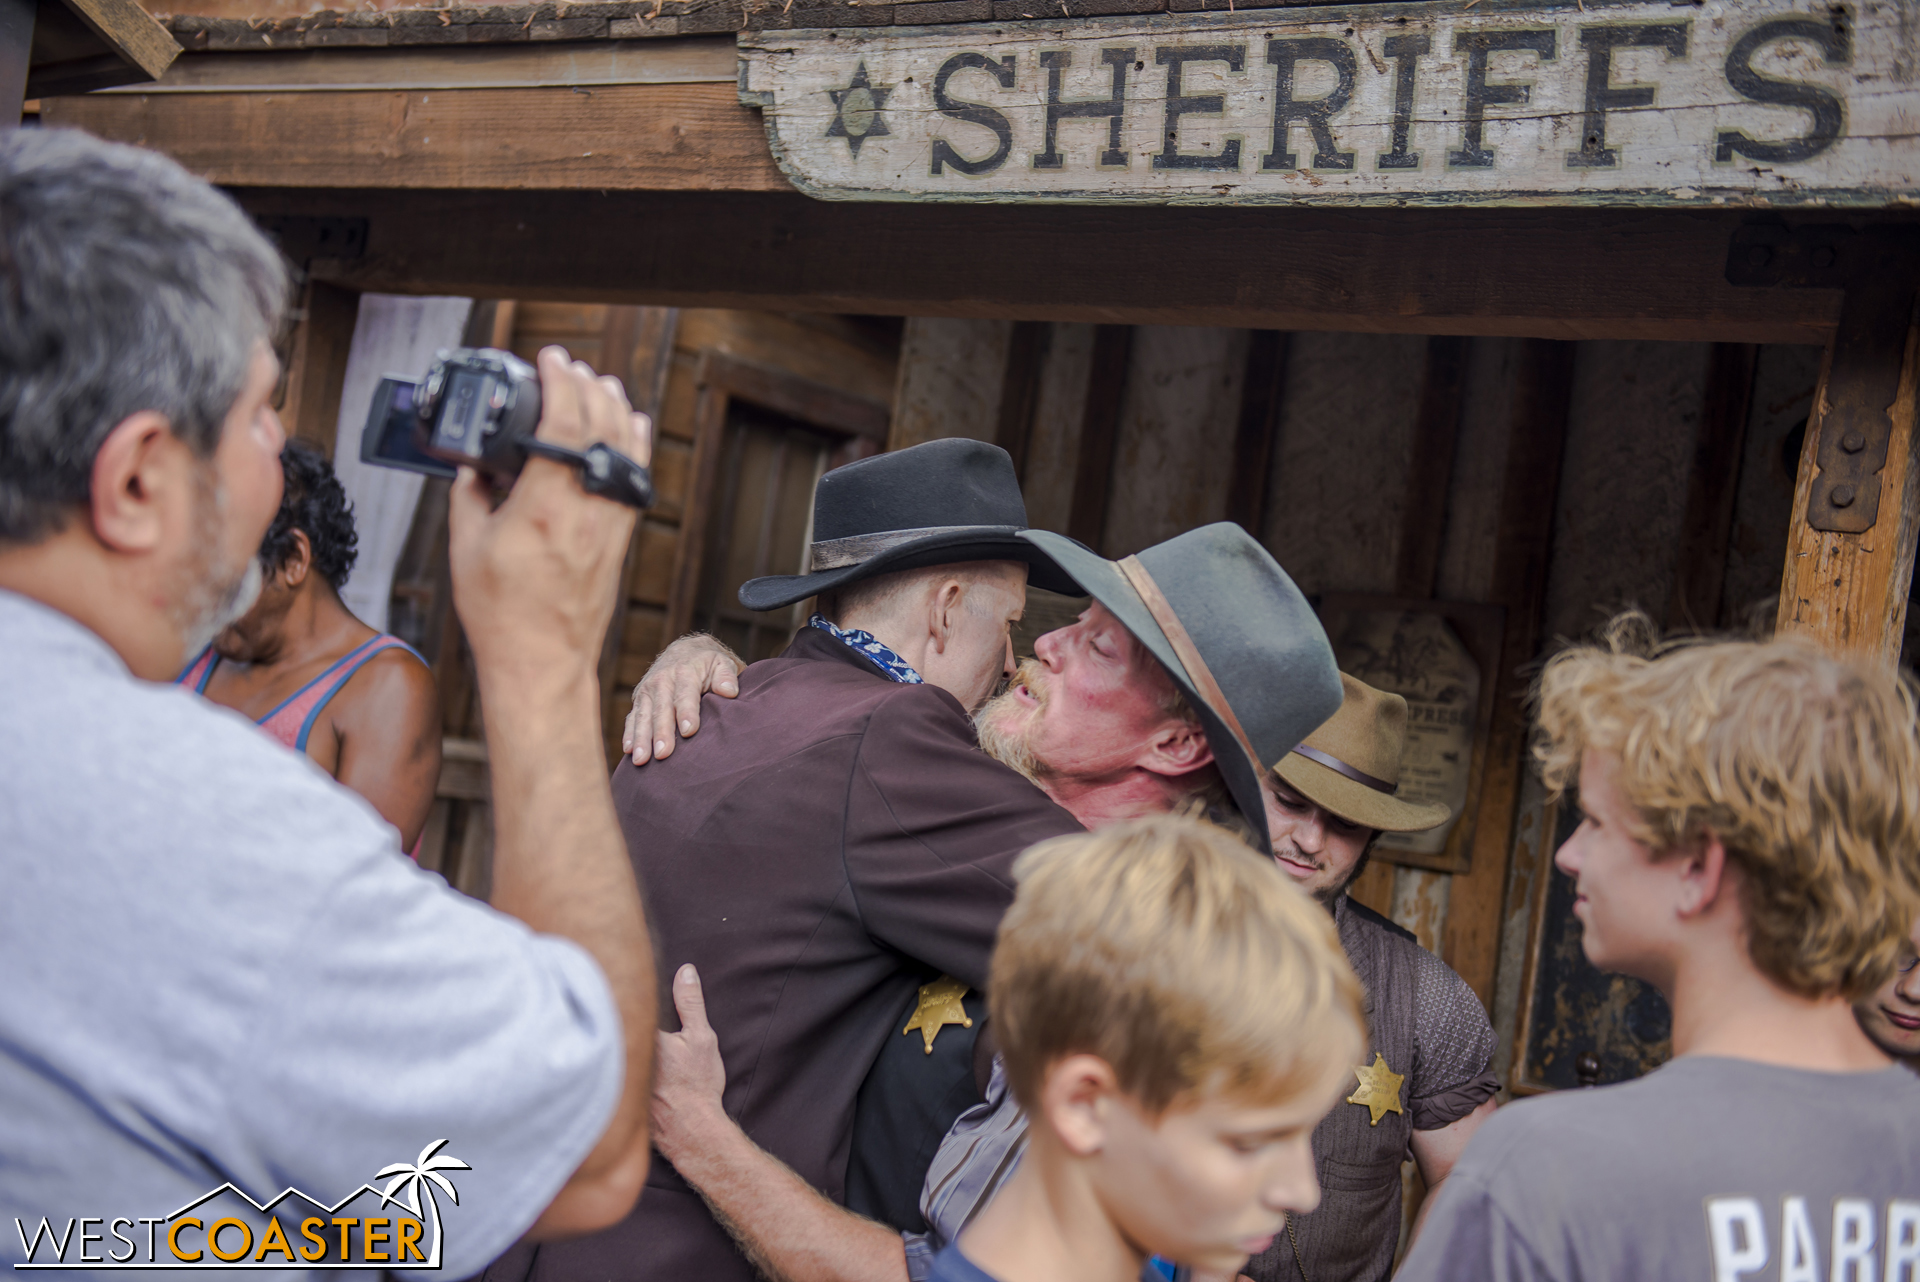 Father and son embrace after the success of the Mayfield scheme. Now they're free, AND they own the town of Calico!